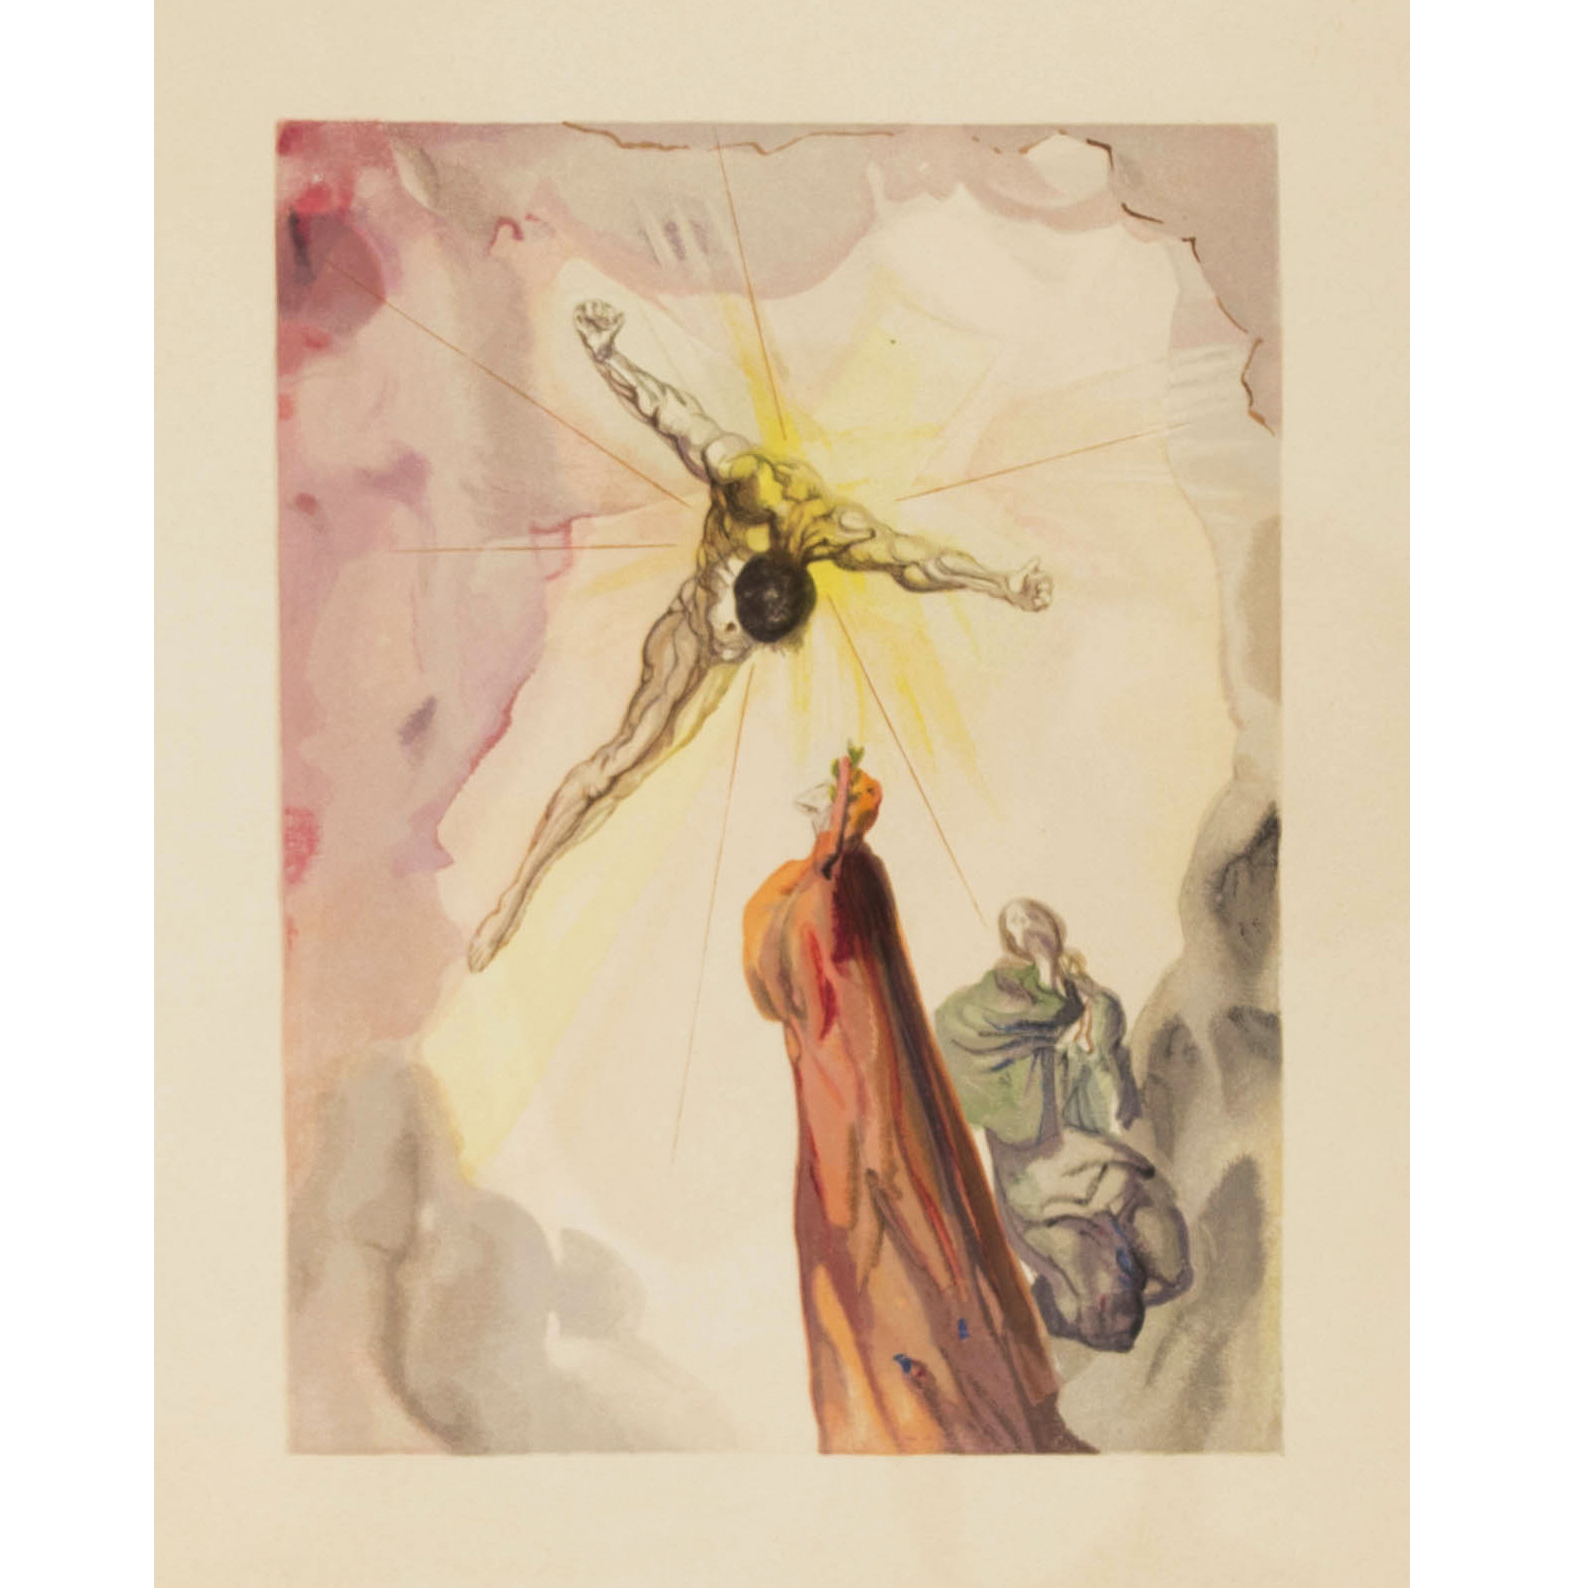 salvador-dali-divine-comedy-the-apparition-of-christ-woodcut-paradise-unframed-store.jpg